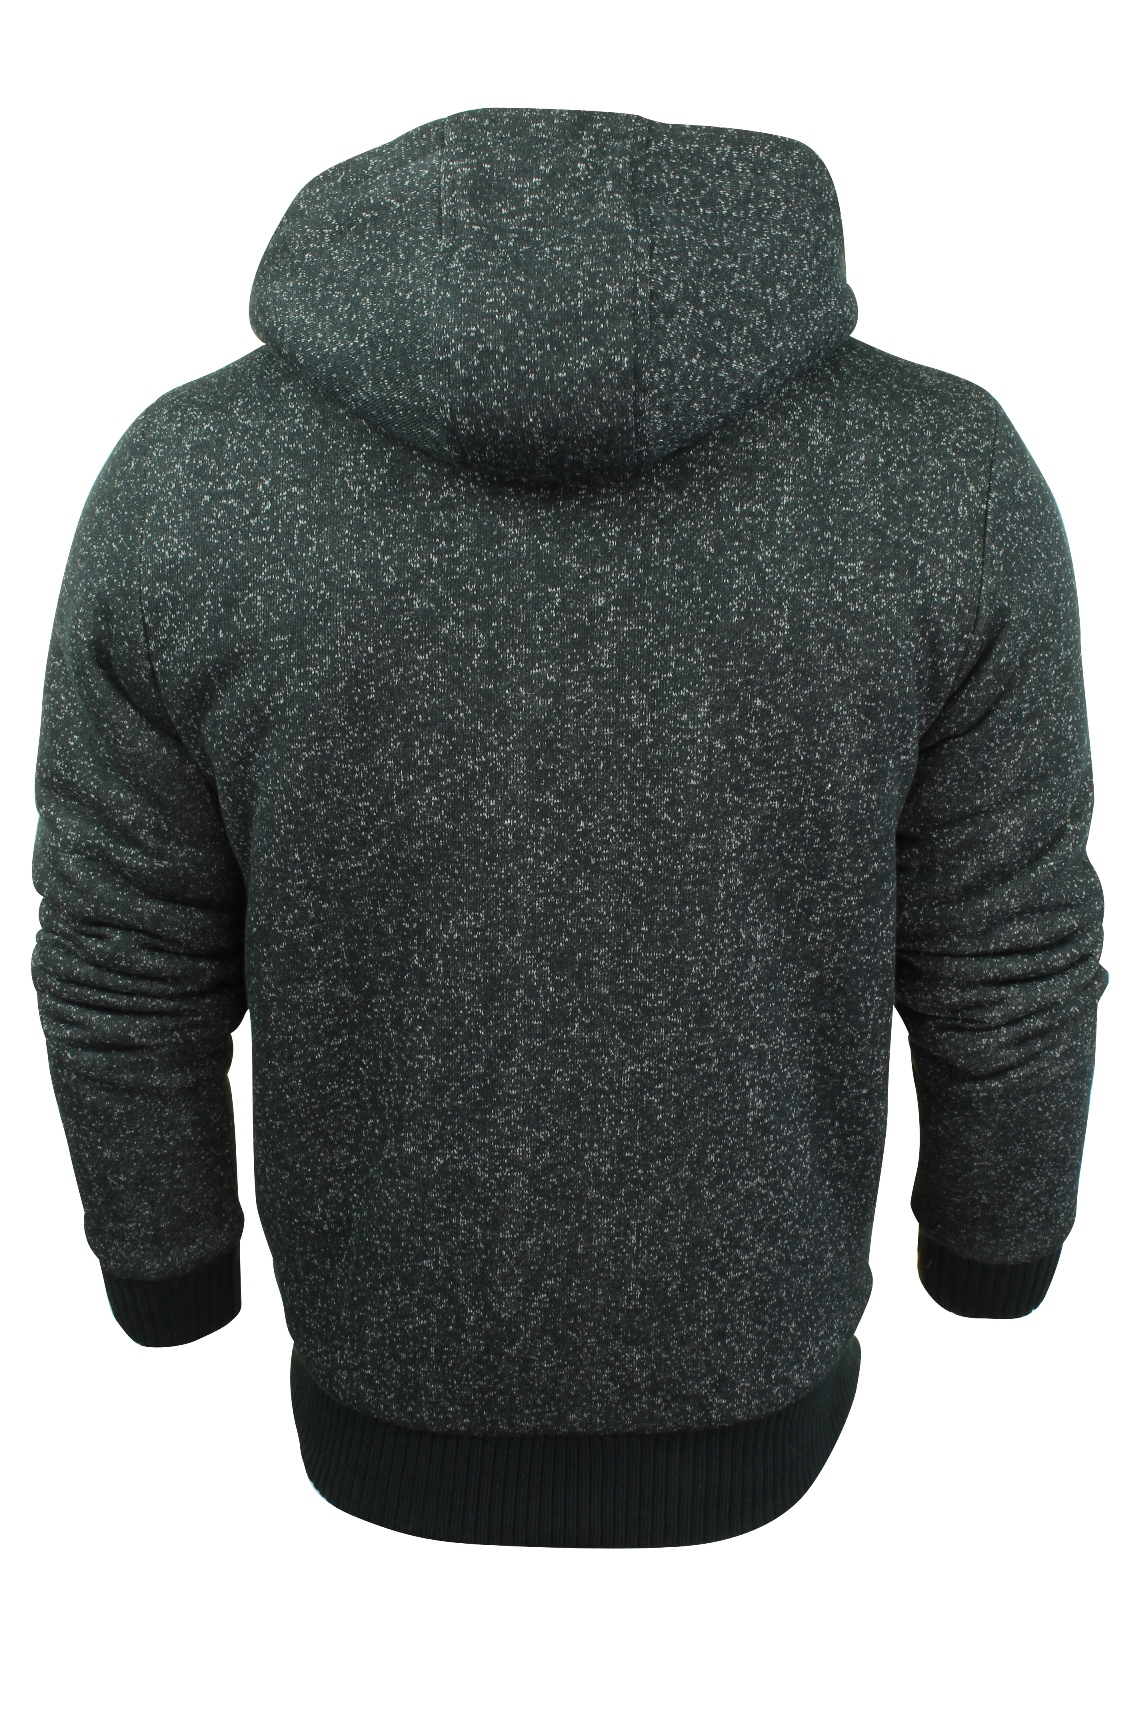 Mens-Dissident-Hoodie-Sweatshirt-Jumper-Jacket-039-Toulouse-039-Sherpa-Fleece-Lined thumbnail 25